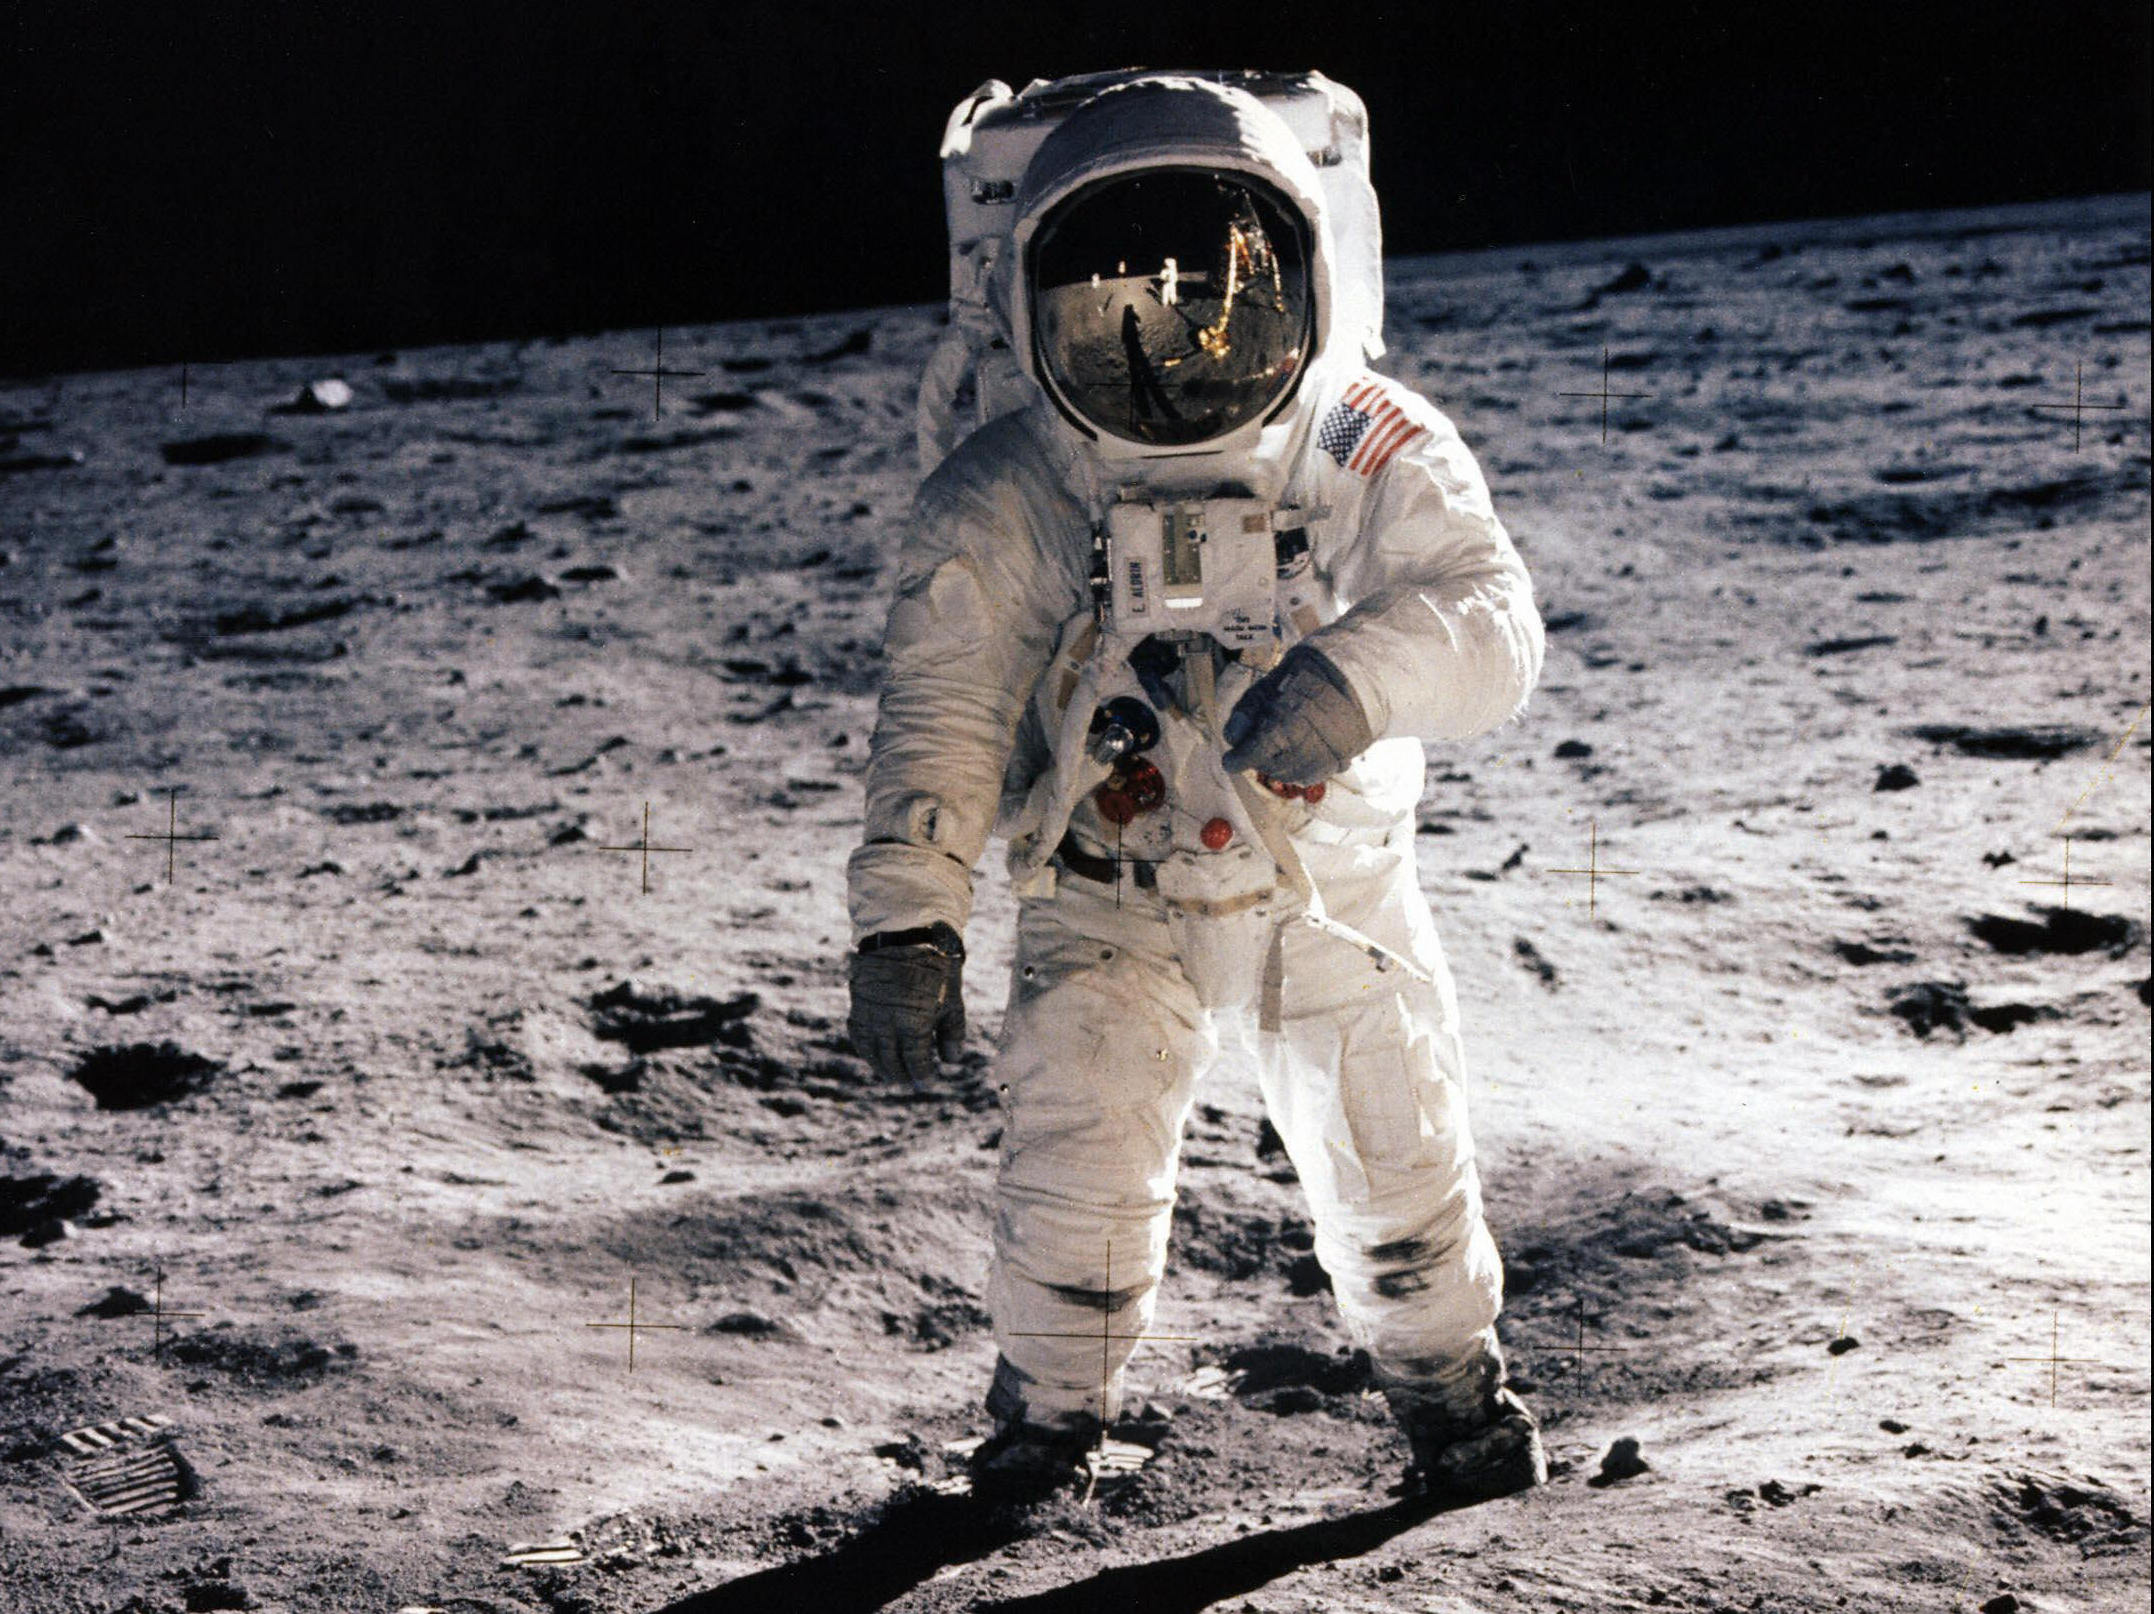 One Small Step For Man, One Giant Lunar Park For The U.S.?